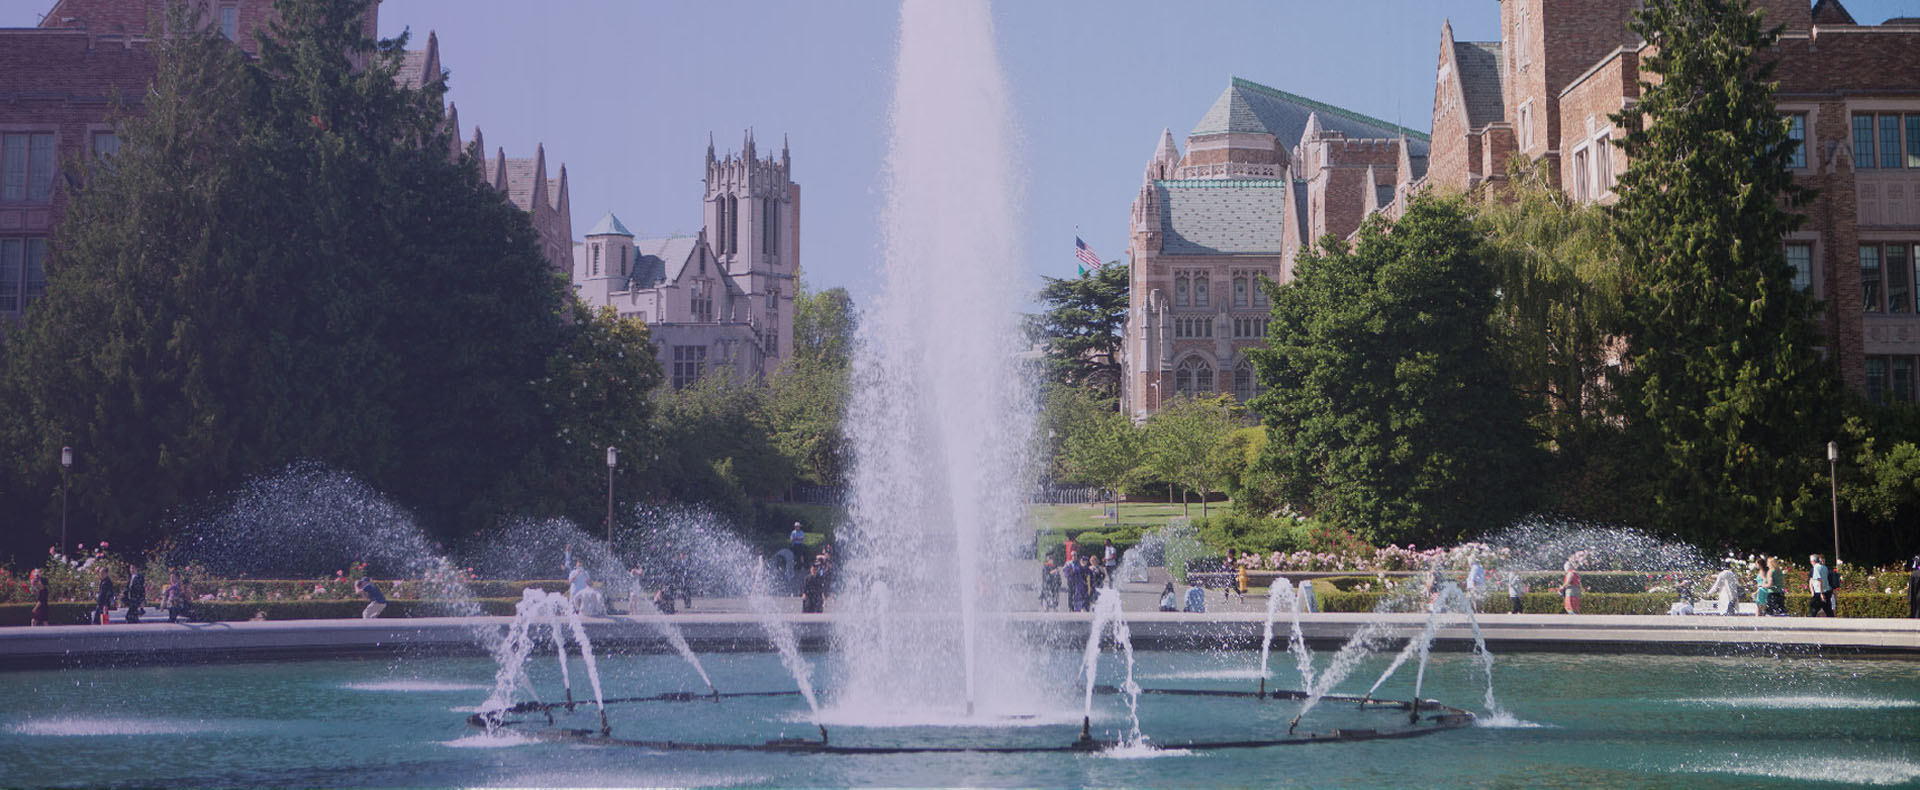 Drumheller Fountain on University of Washington Campus